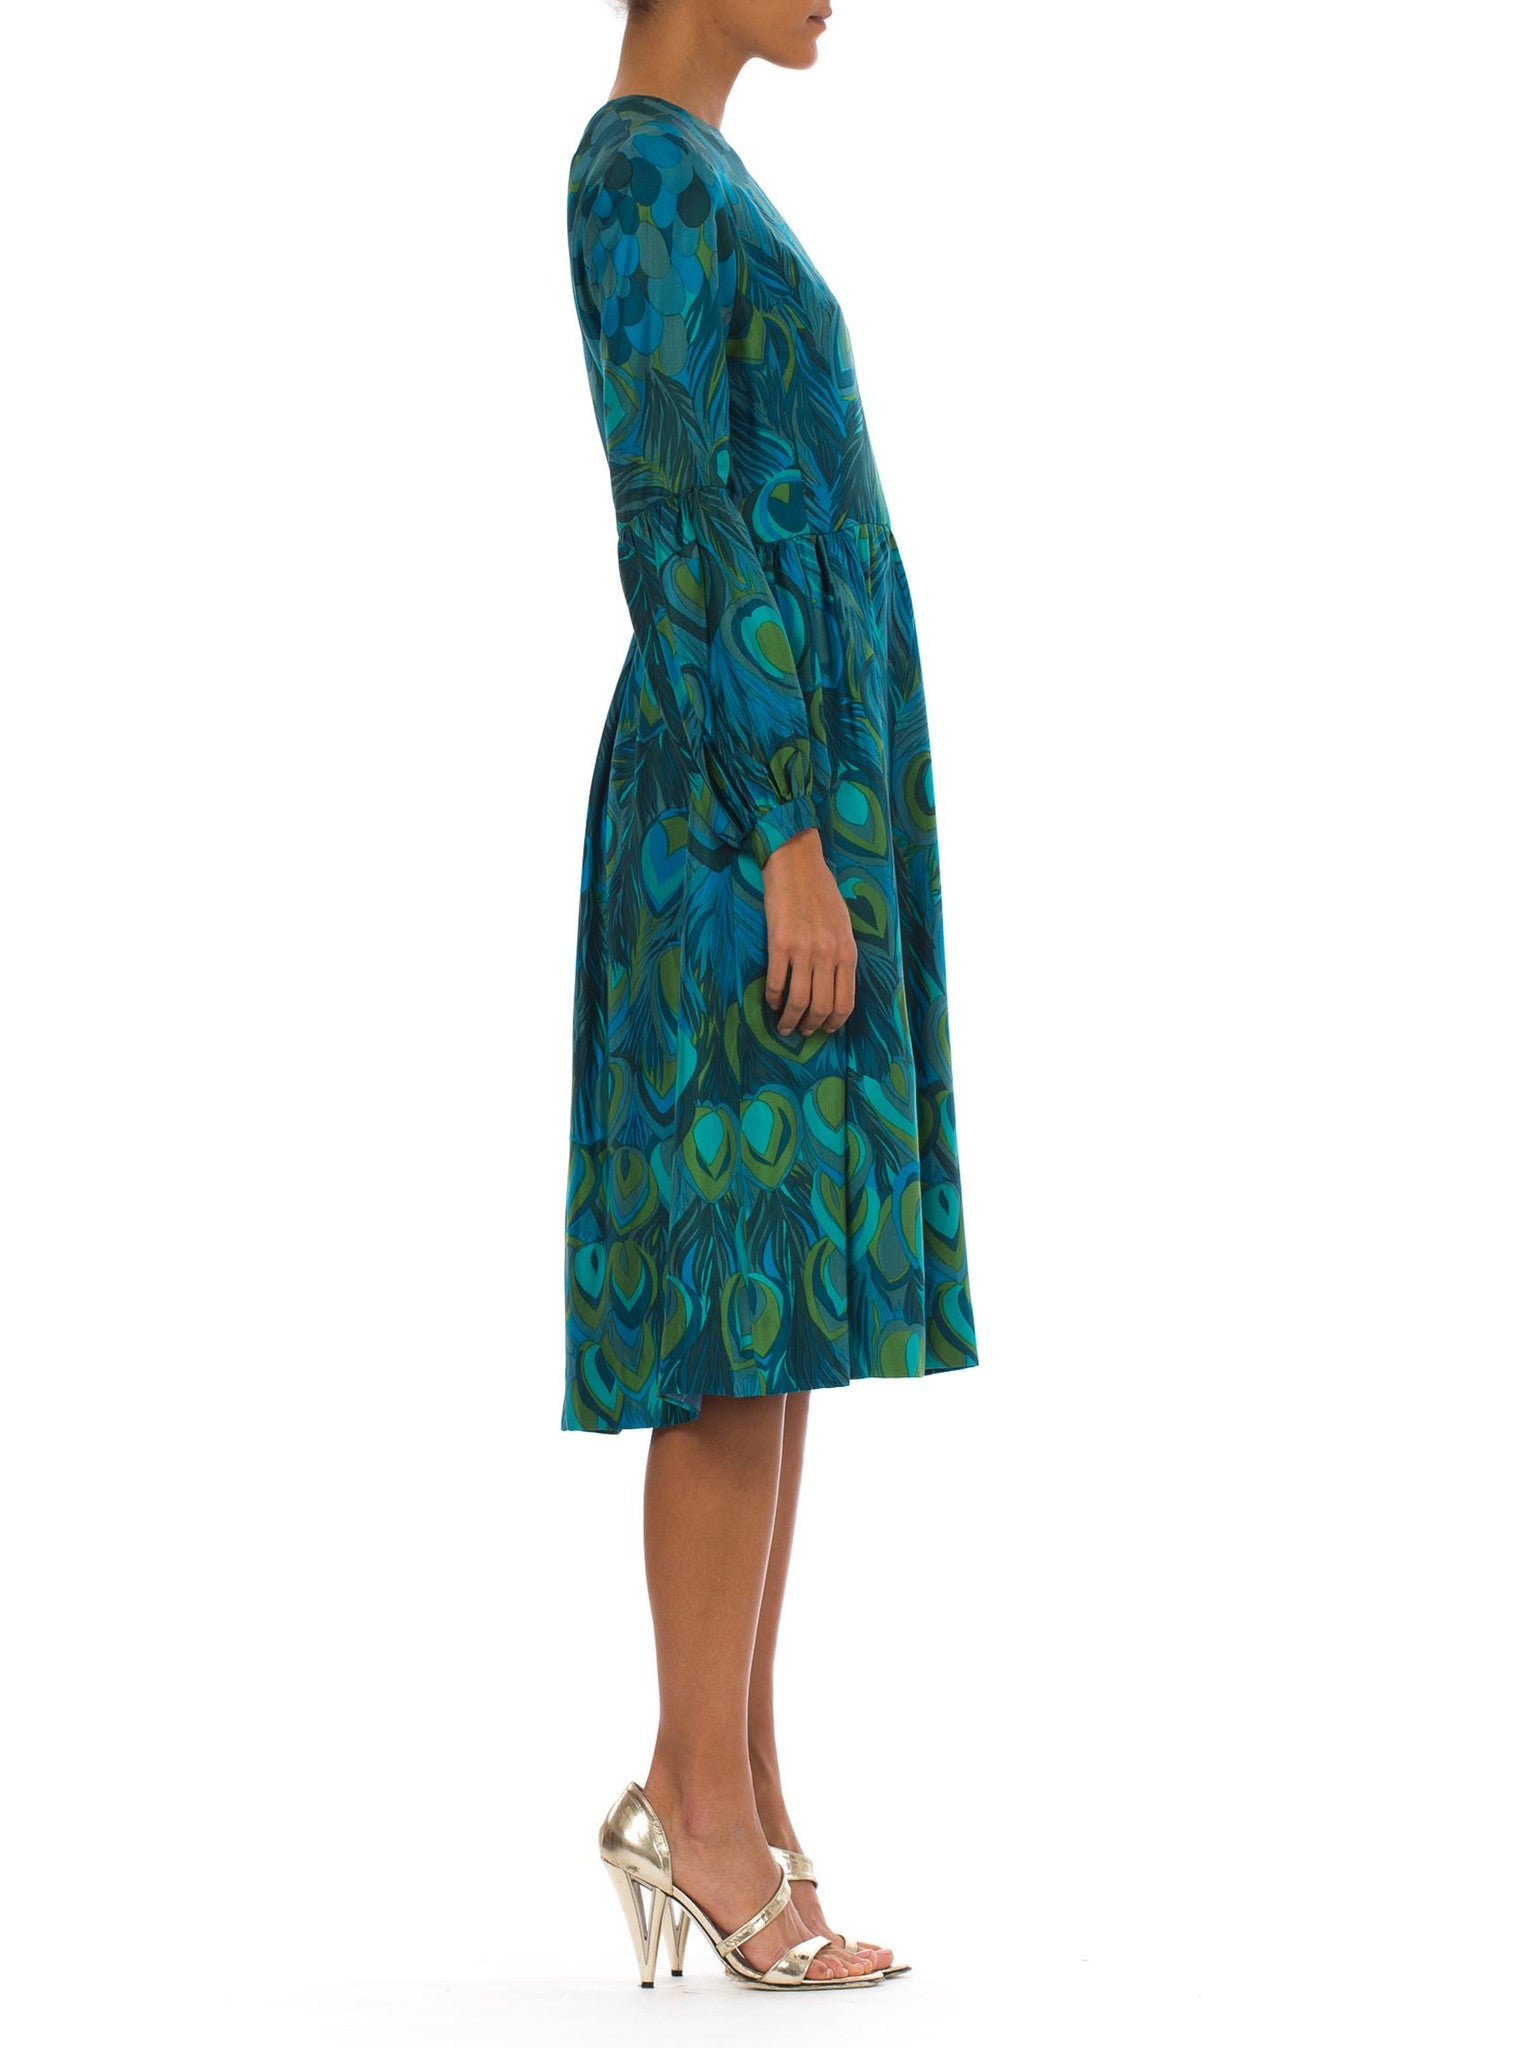 1960S Teal & Green Silk Twill Hand Printed Peacock Feather Print Long Sleeve Dress